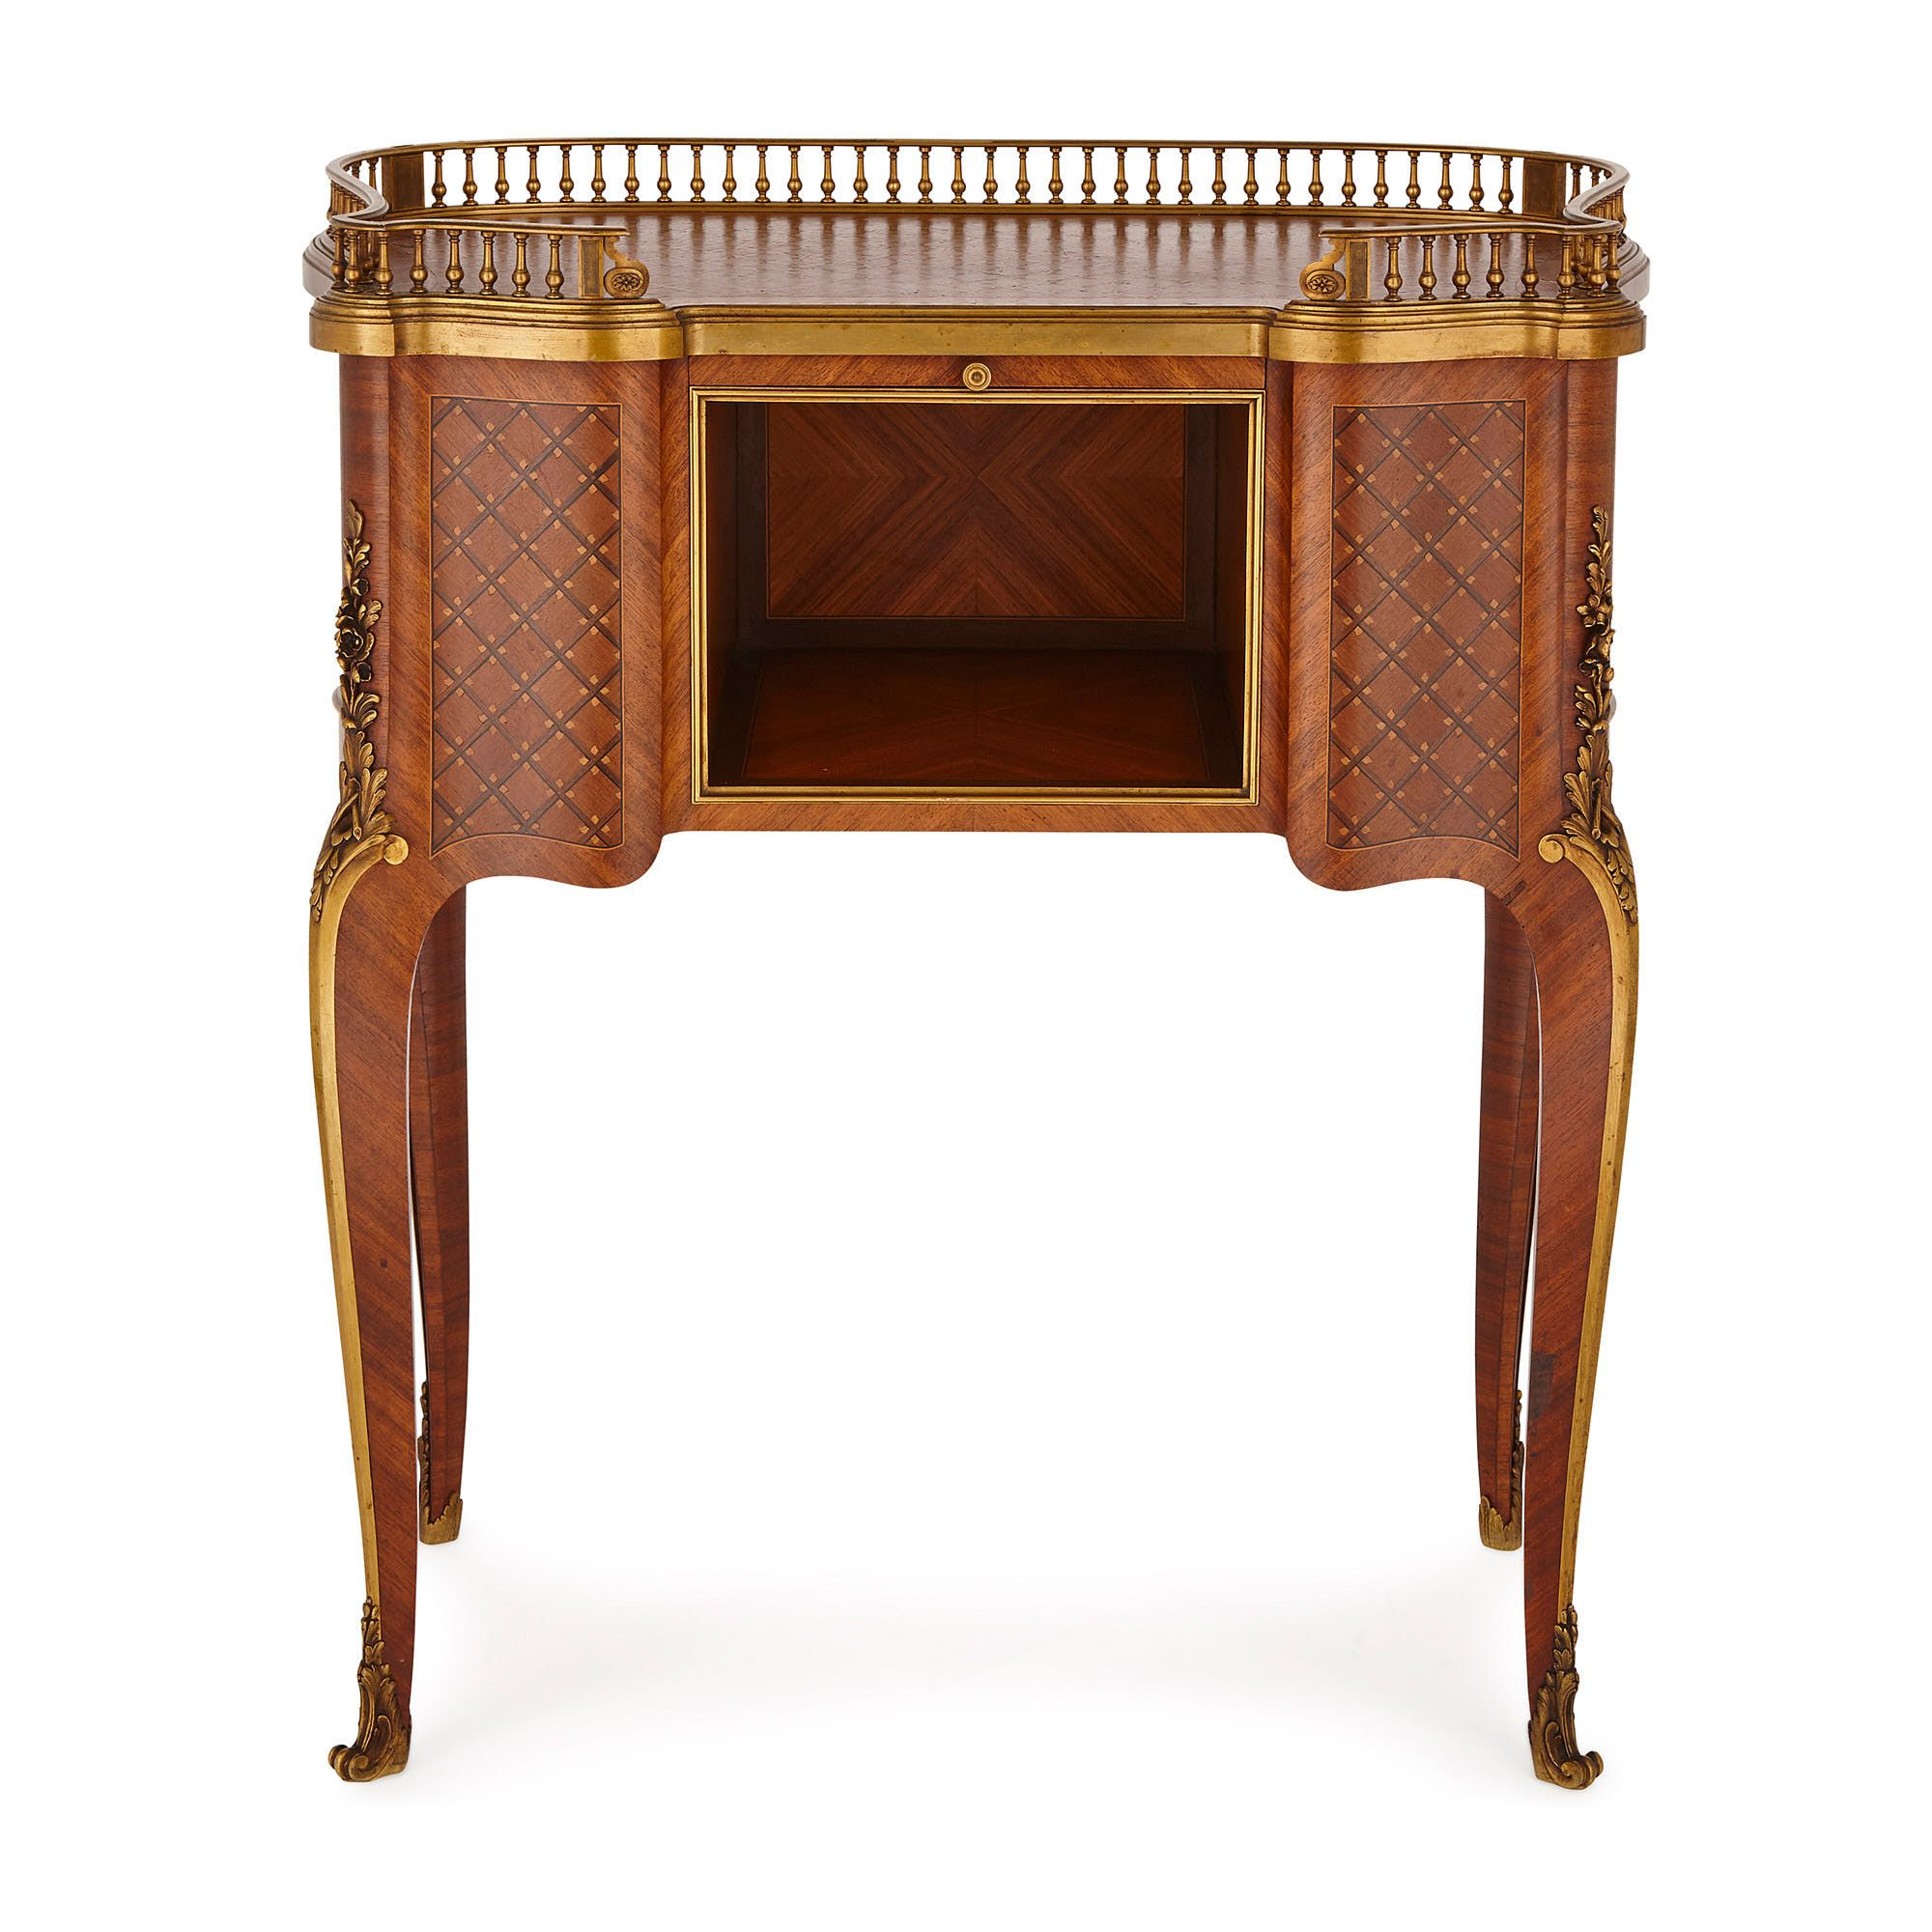 Meuble Style Louis Xv Louis Xv Style Ormolu Mounted Parquetry Cabinet By Sormani